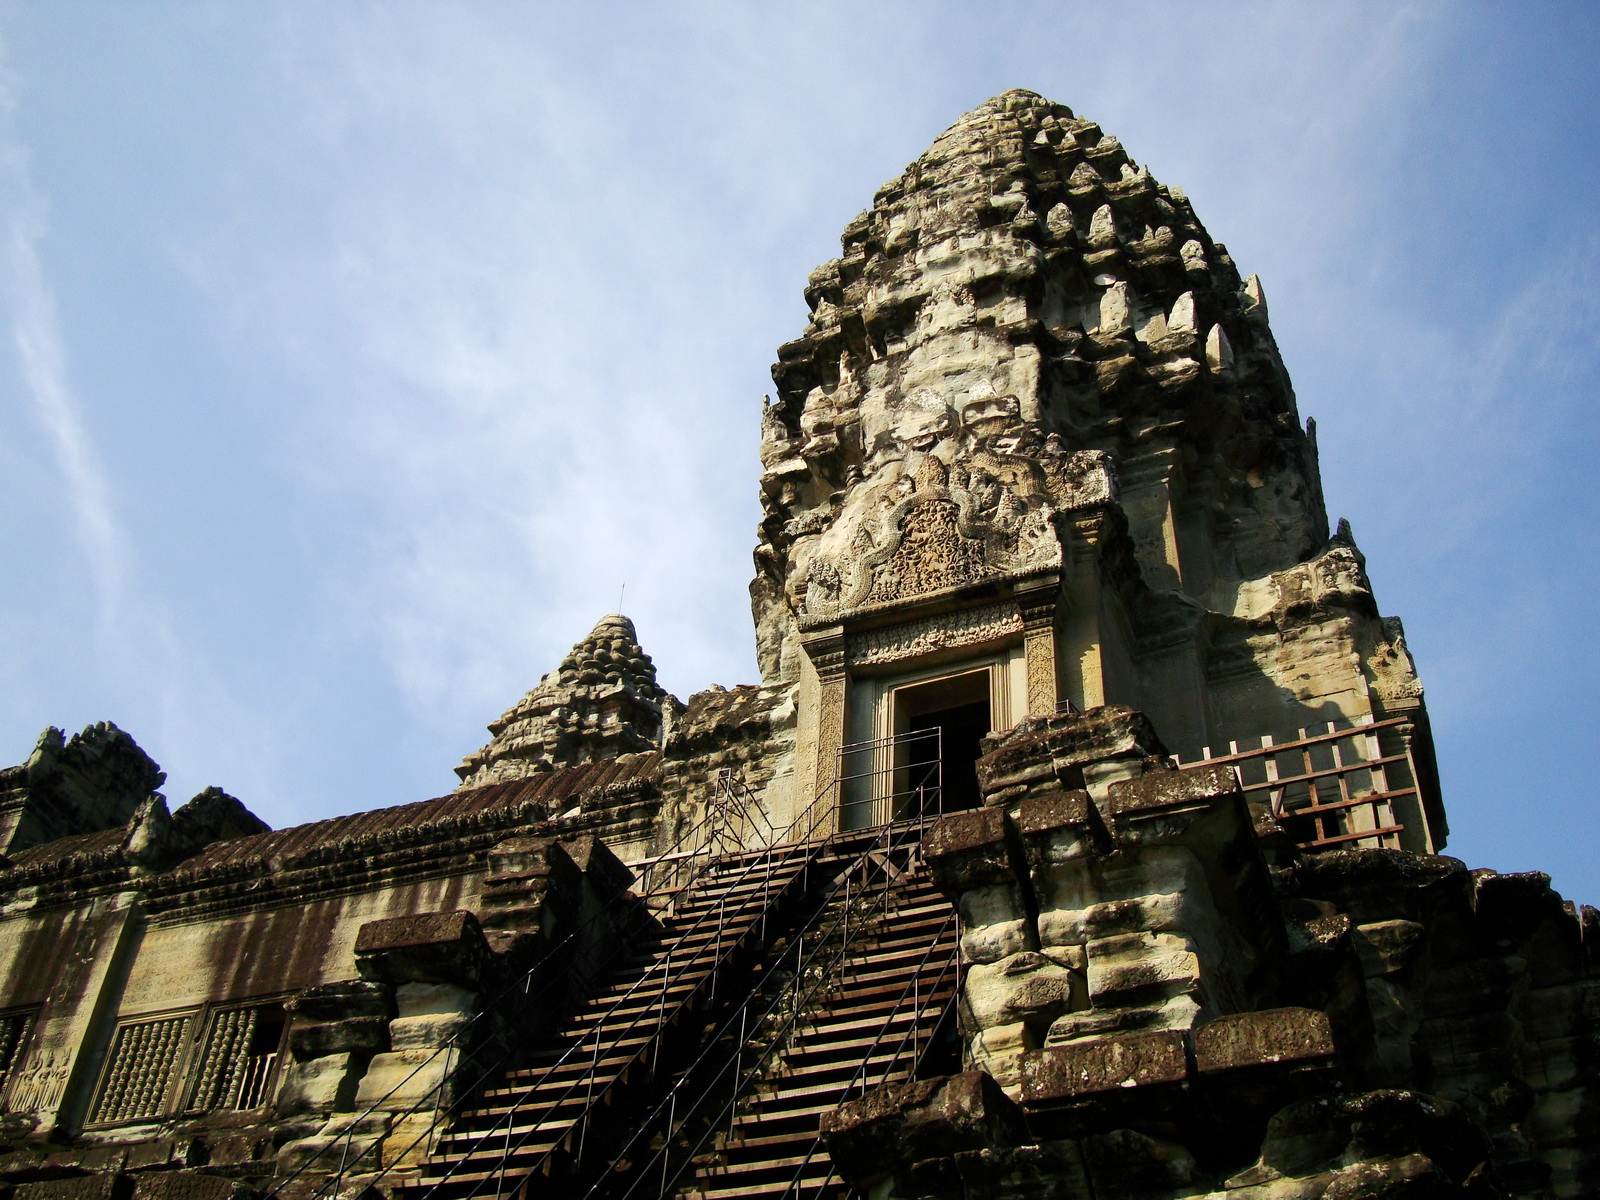 Angkor Wat Khmer architecture inner sanctuary towers 09